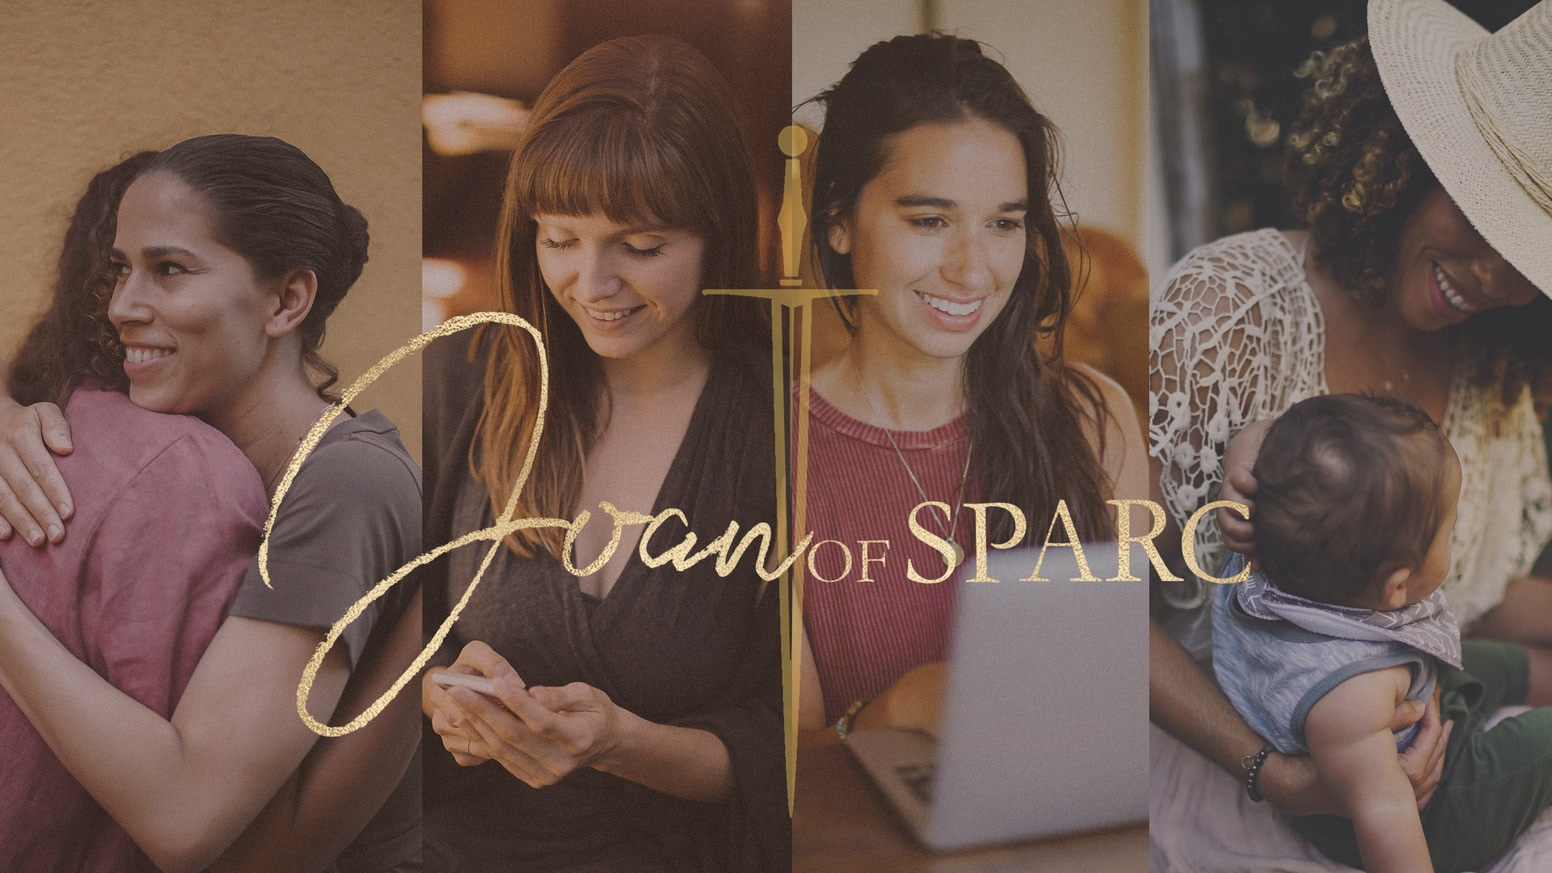 Joan of Sparc - Empowered and Free! Revolutionary App by Ciela